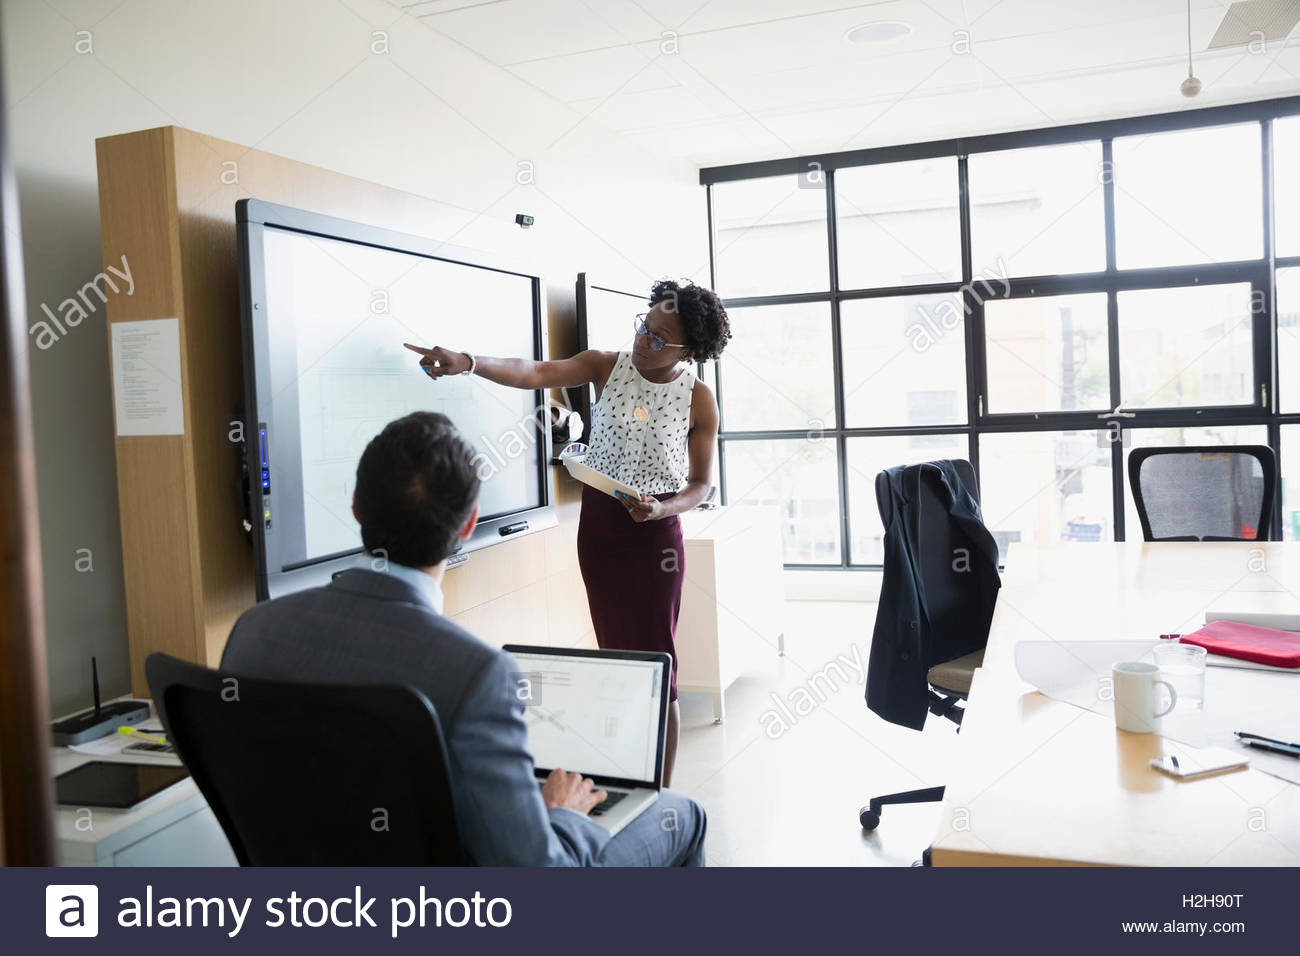 Business people using television in conference room meeting - Stock Image